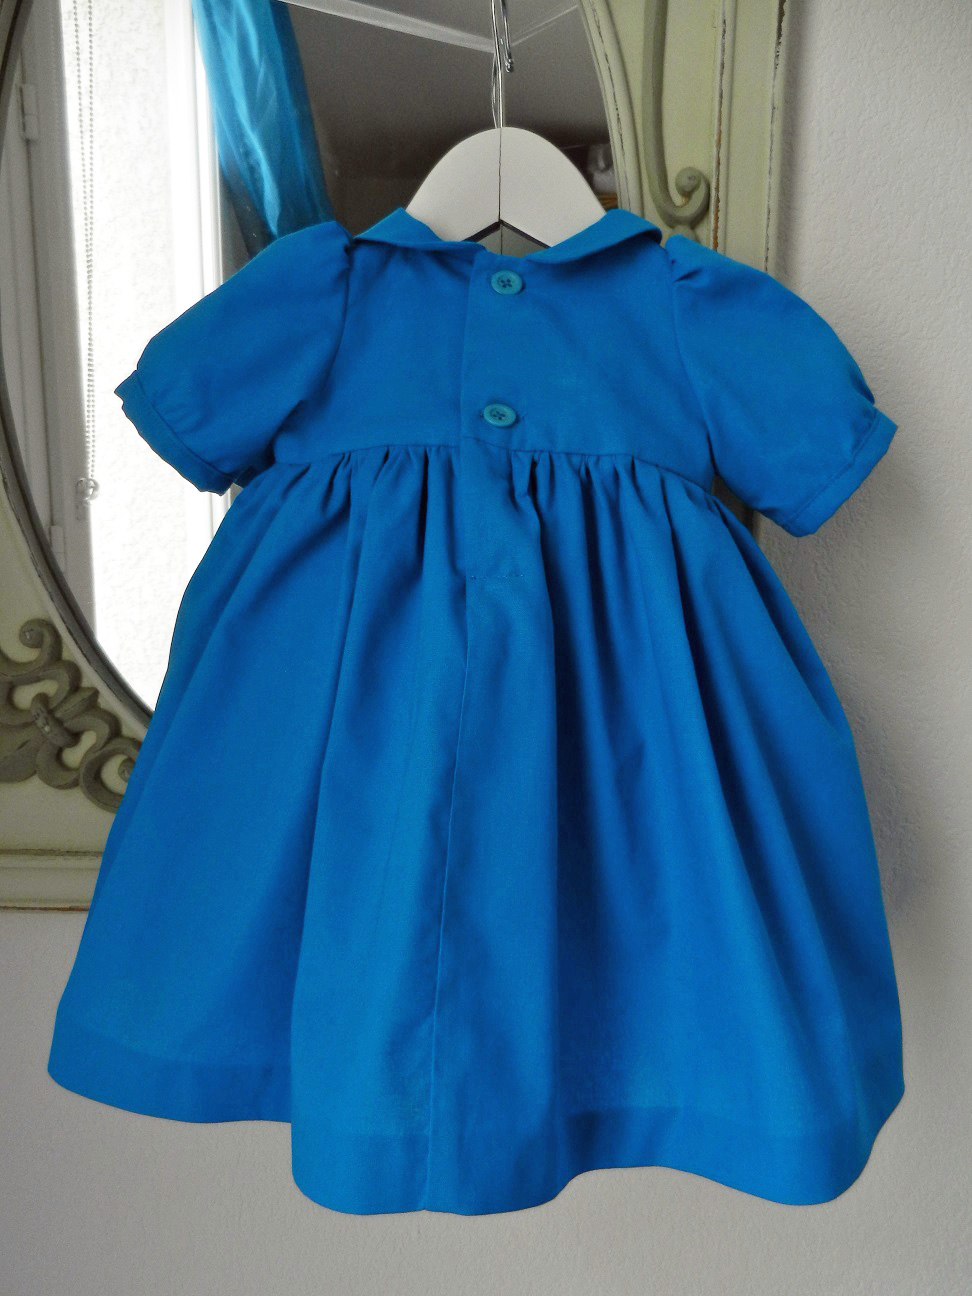 Duchesse or ange 190 robe bleue alice tablier blanc jupon blue dress white apron petticoat c